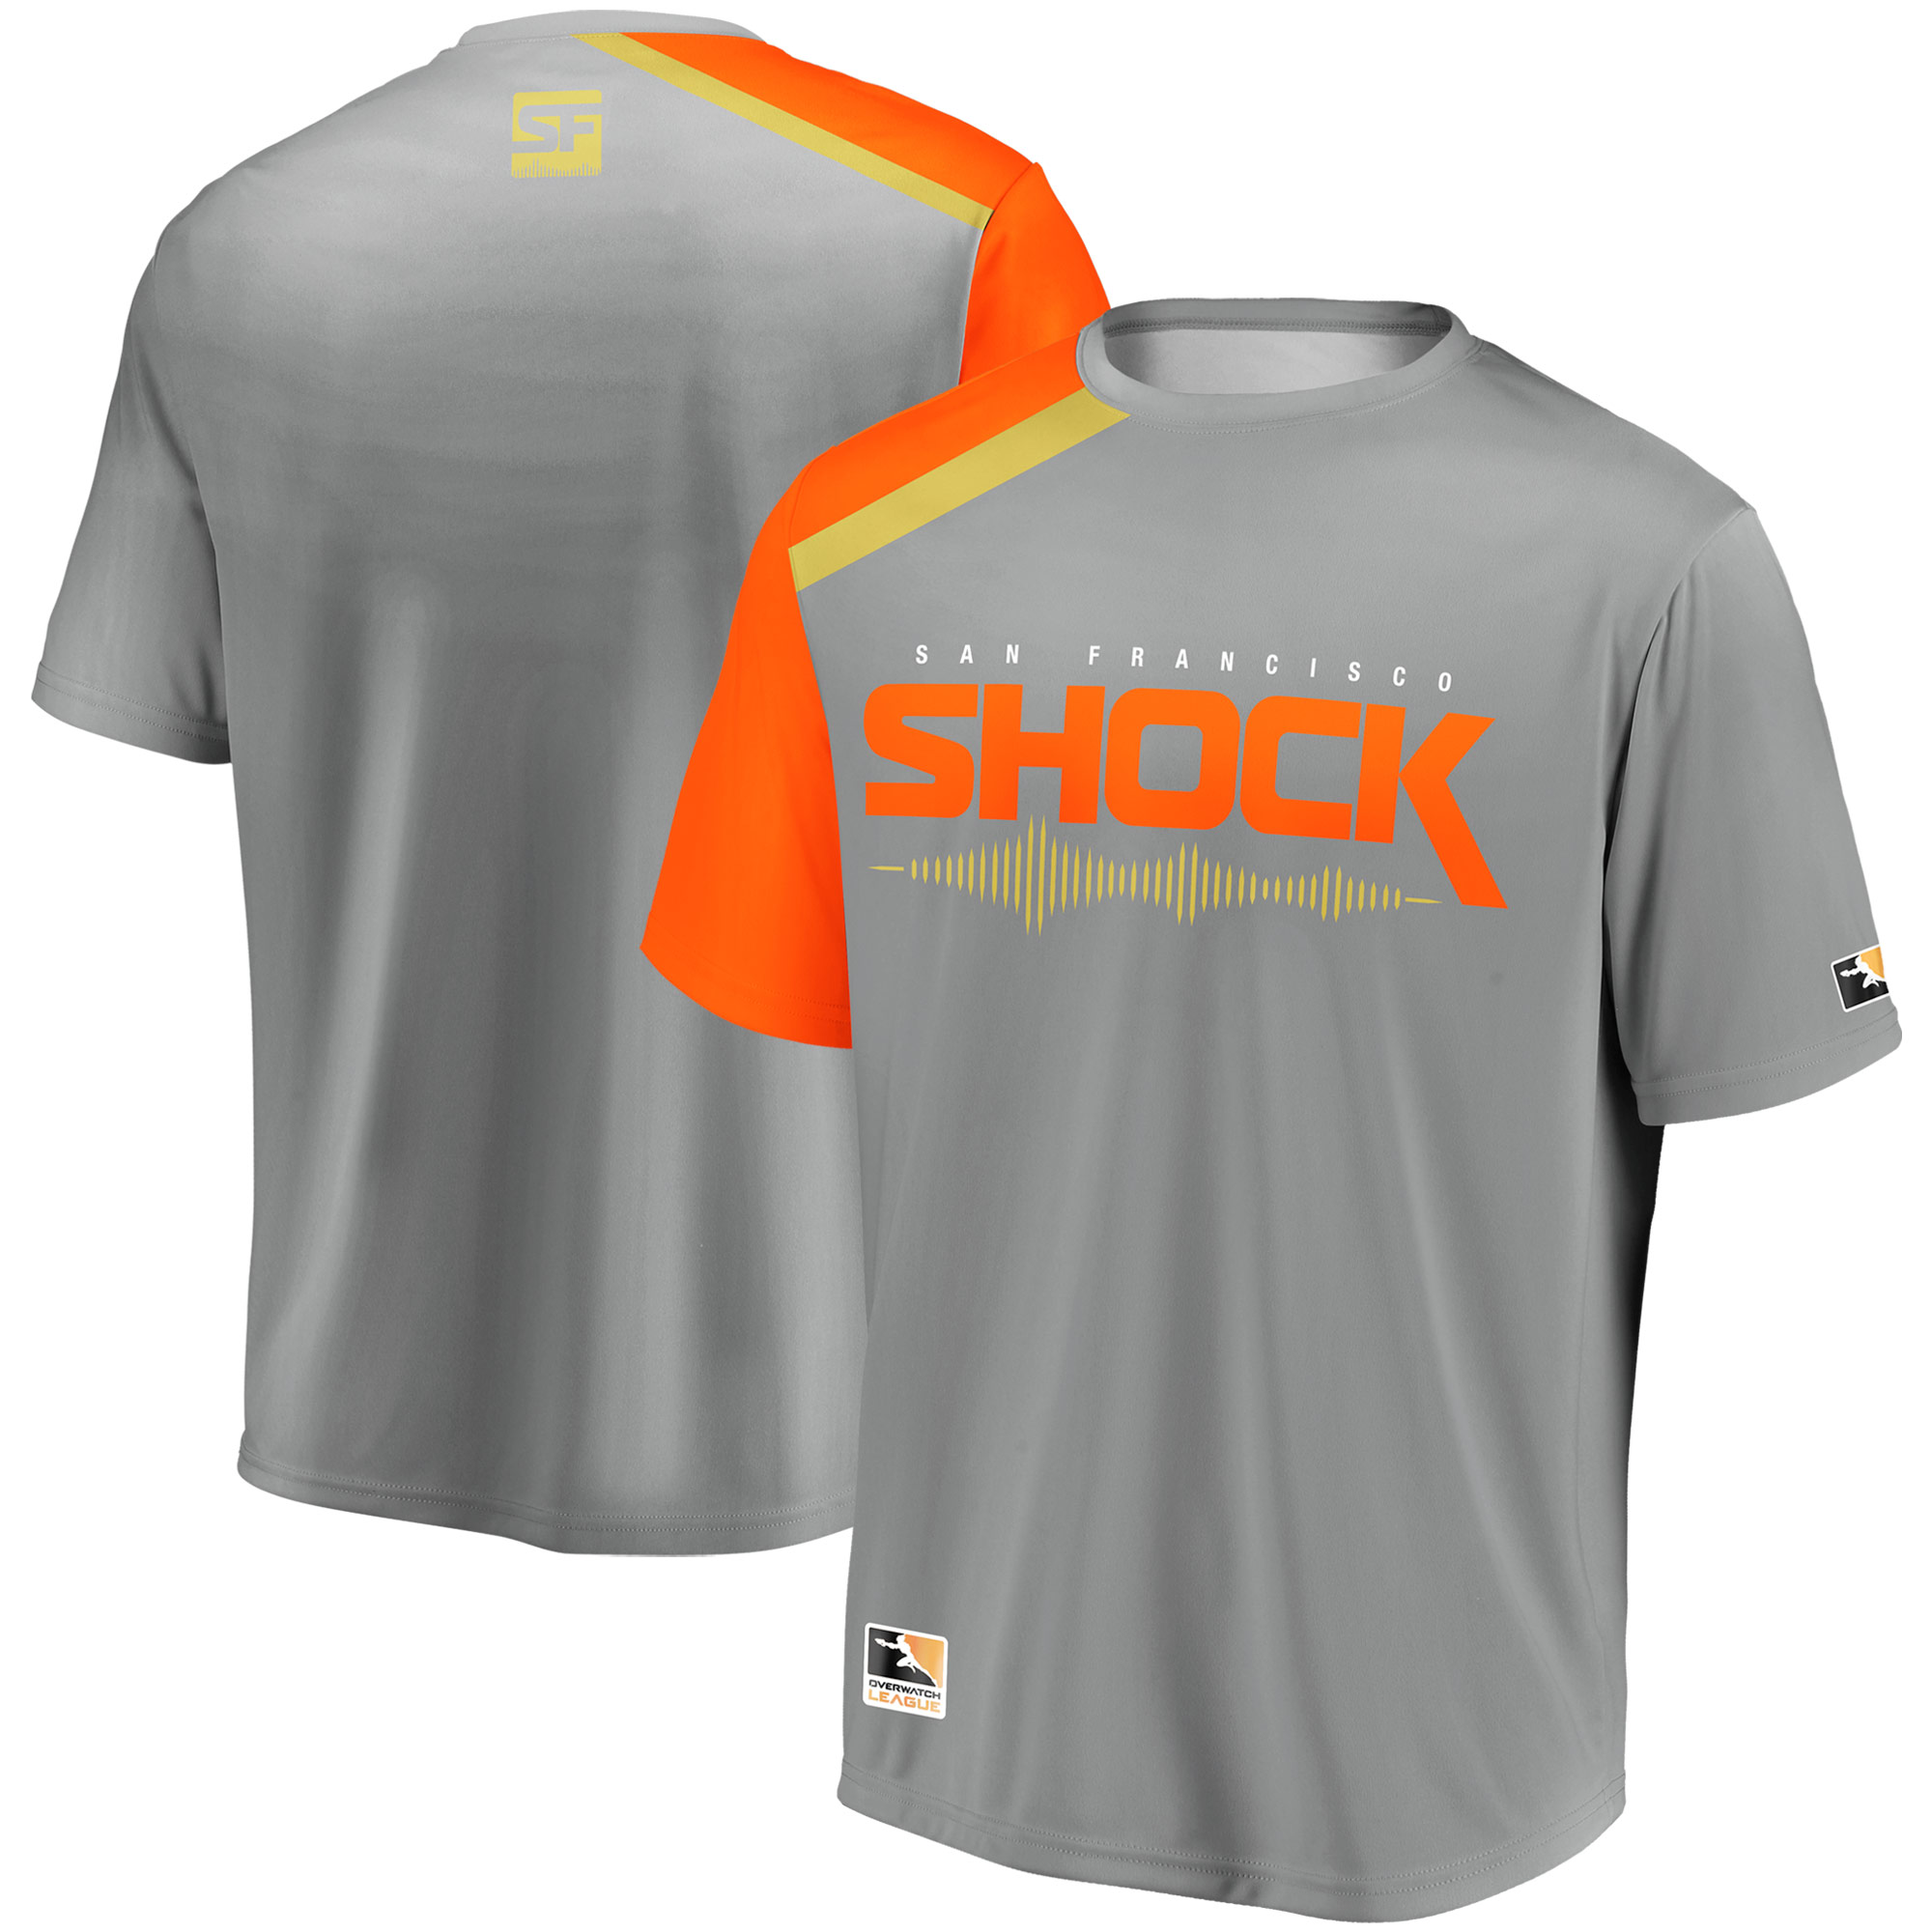 San Francisco Shock Overwatch League Replica Home Jersey - Gray